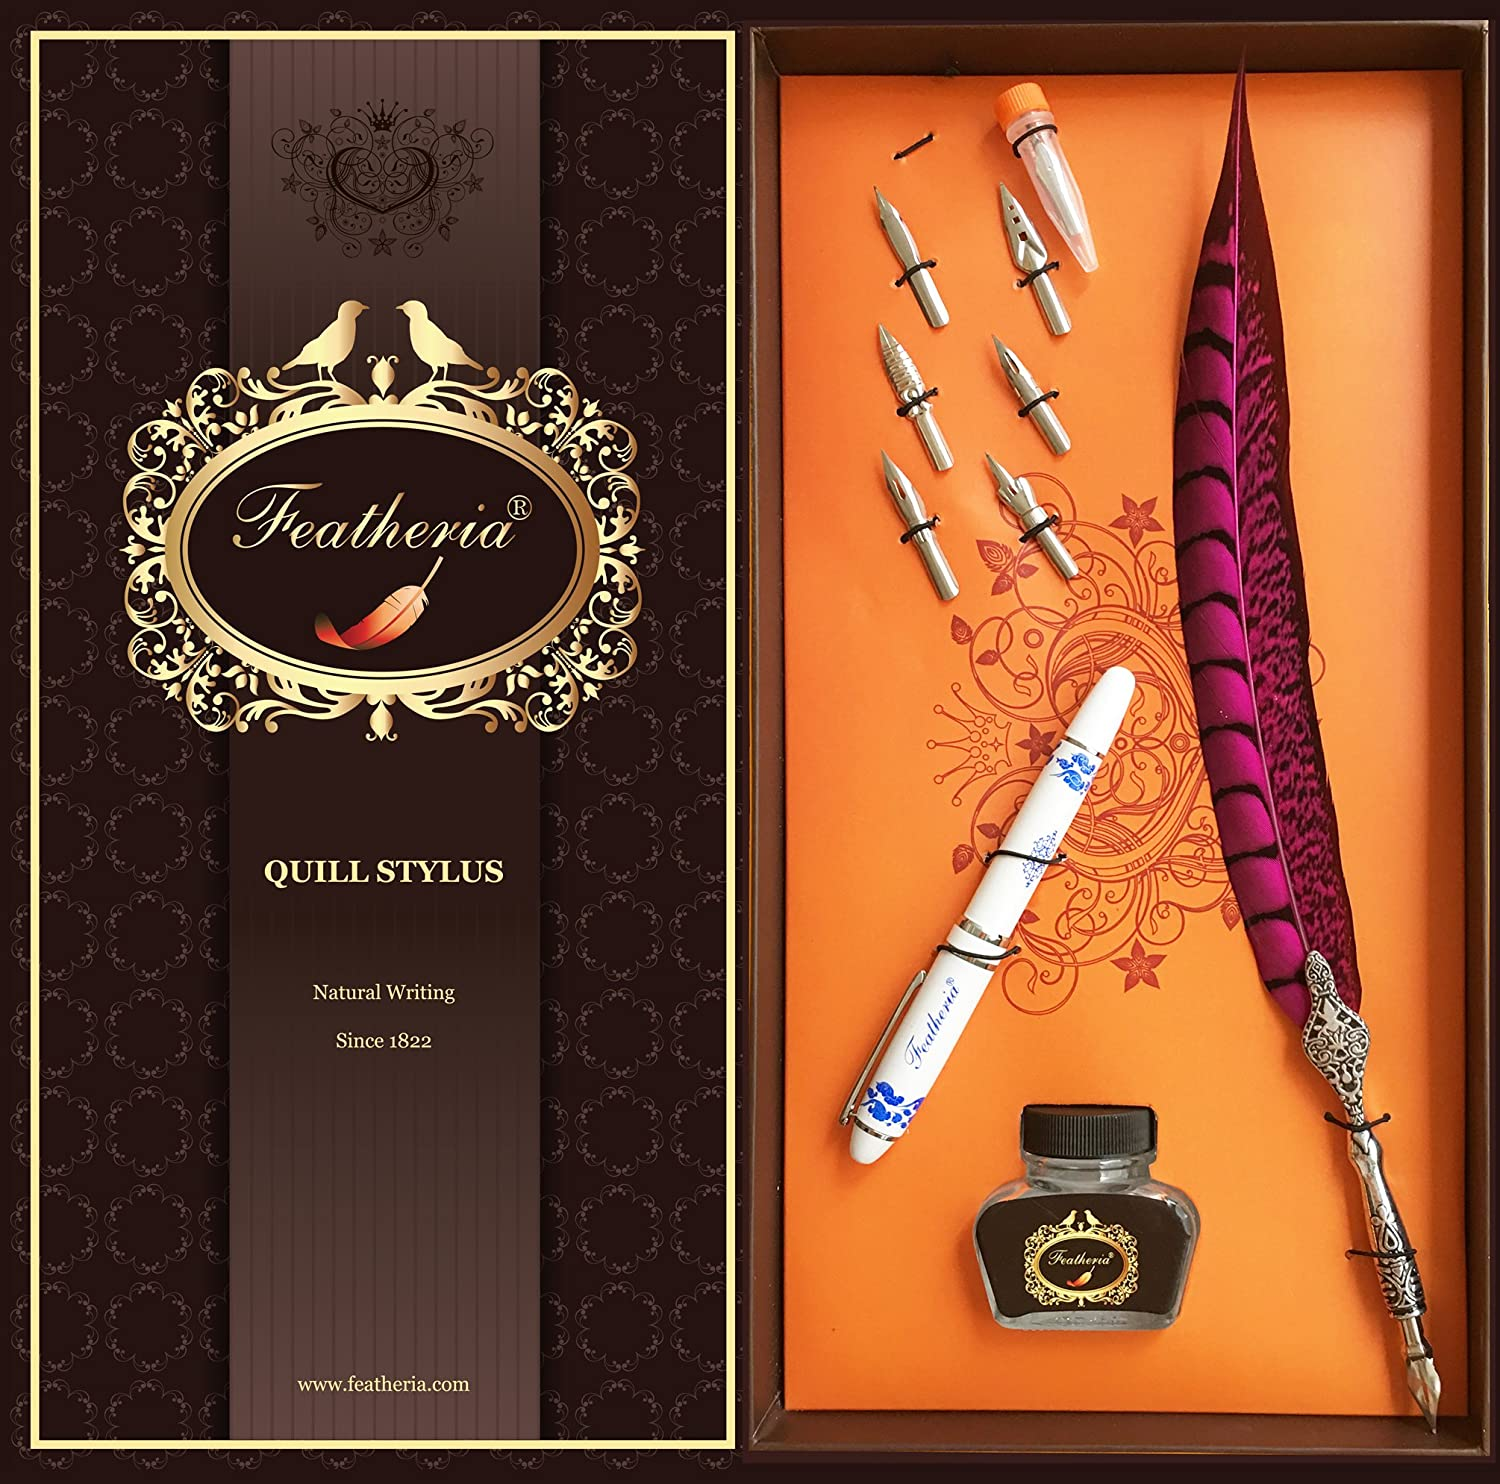 Featheria Fine Point Stylus & Quill Pen - for iPad, iPhone, Samsung Galaxy, Kindle Fire and Most Touch Screens. Great Gift! (Fuchsia Pheasant)